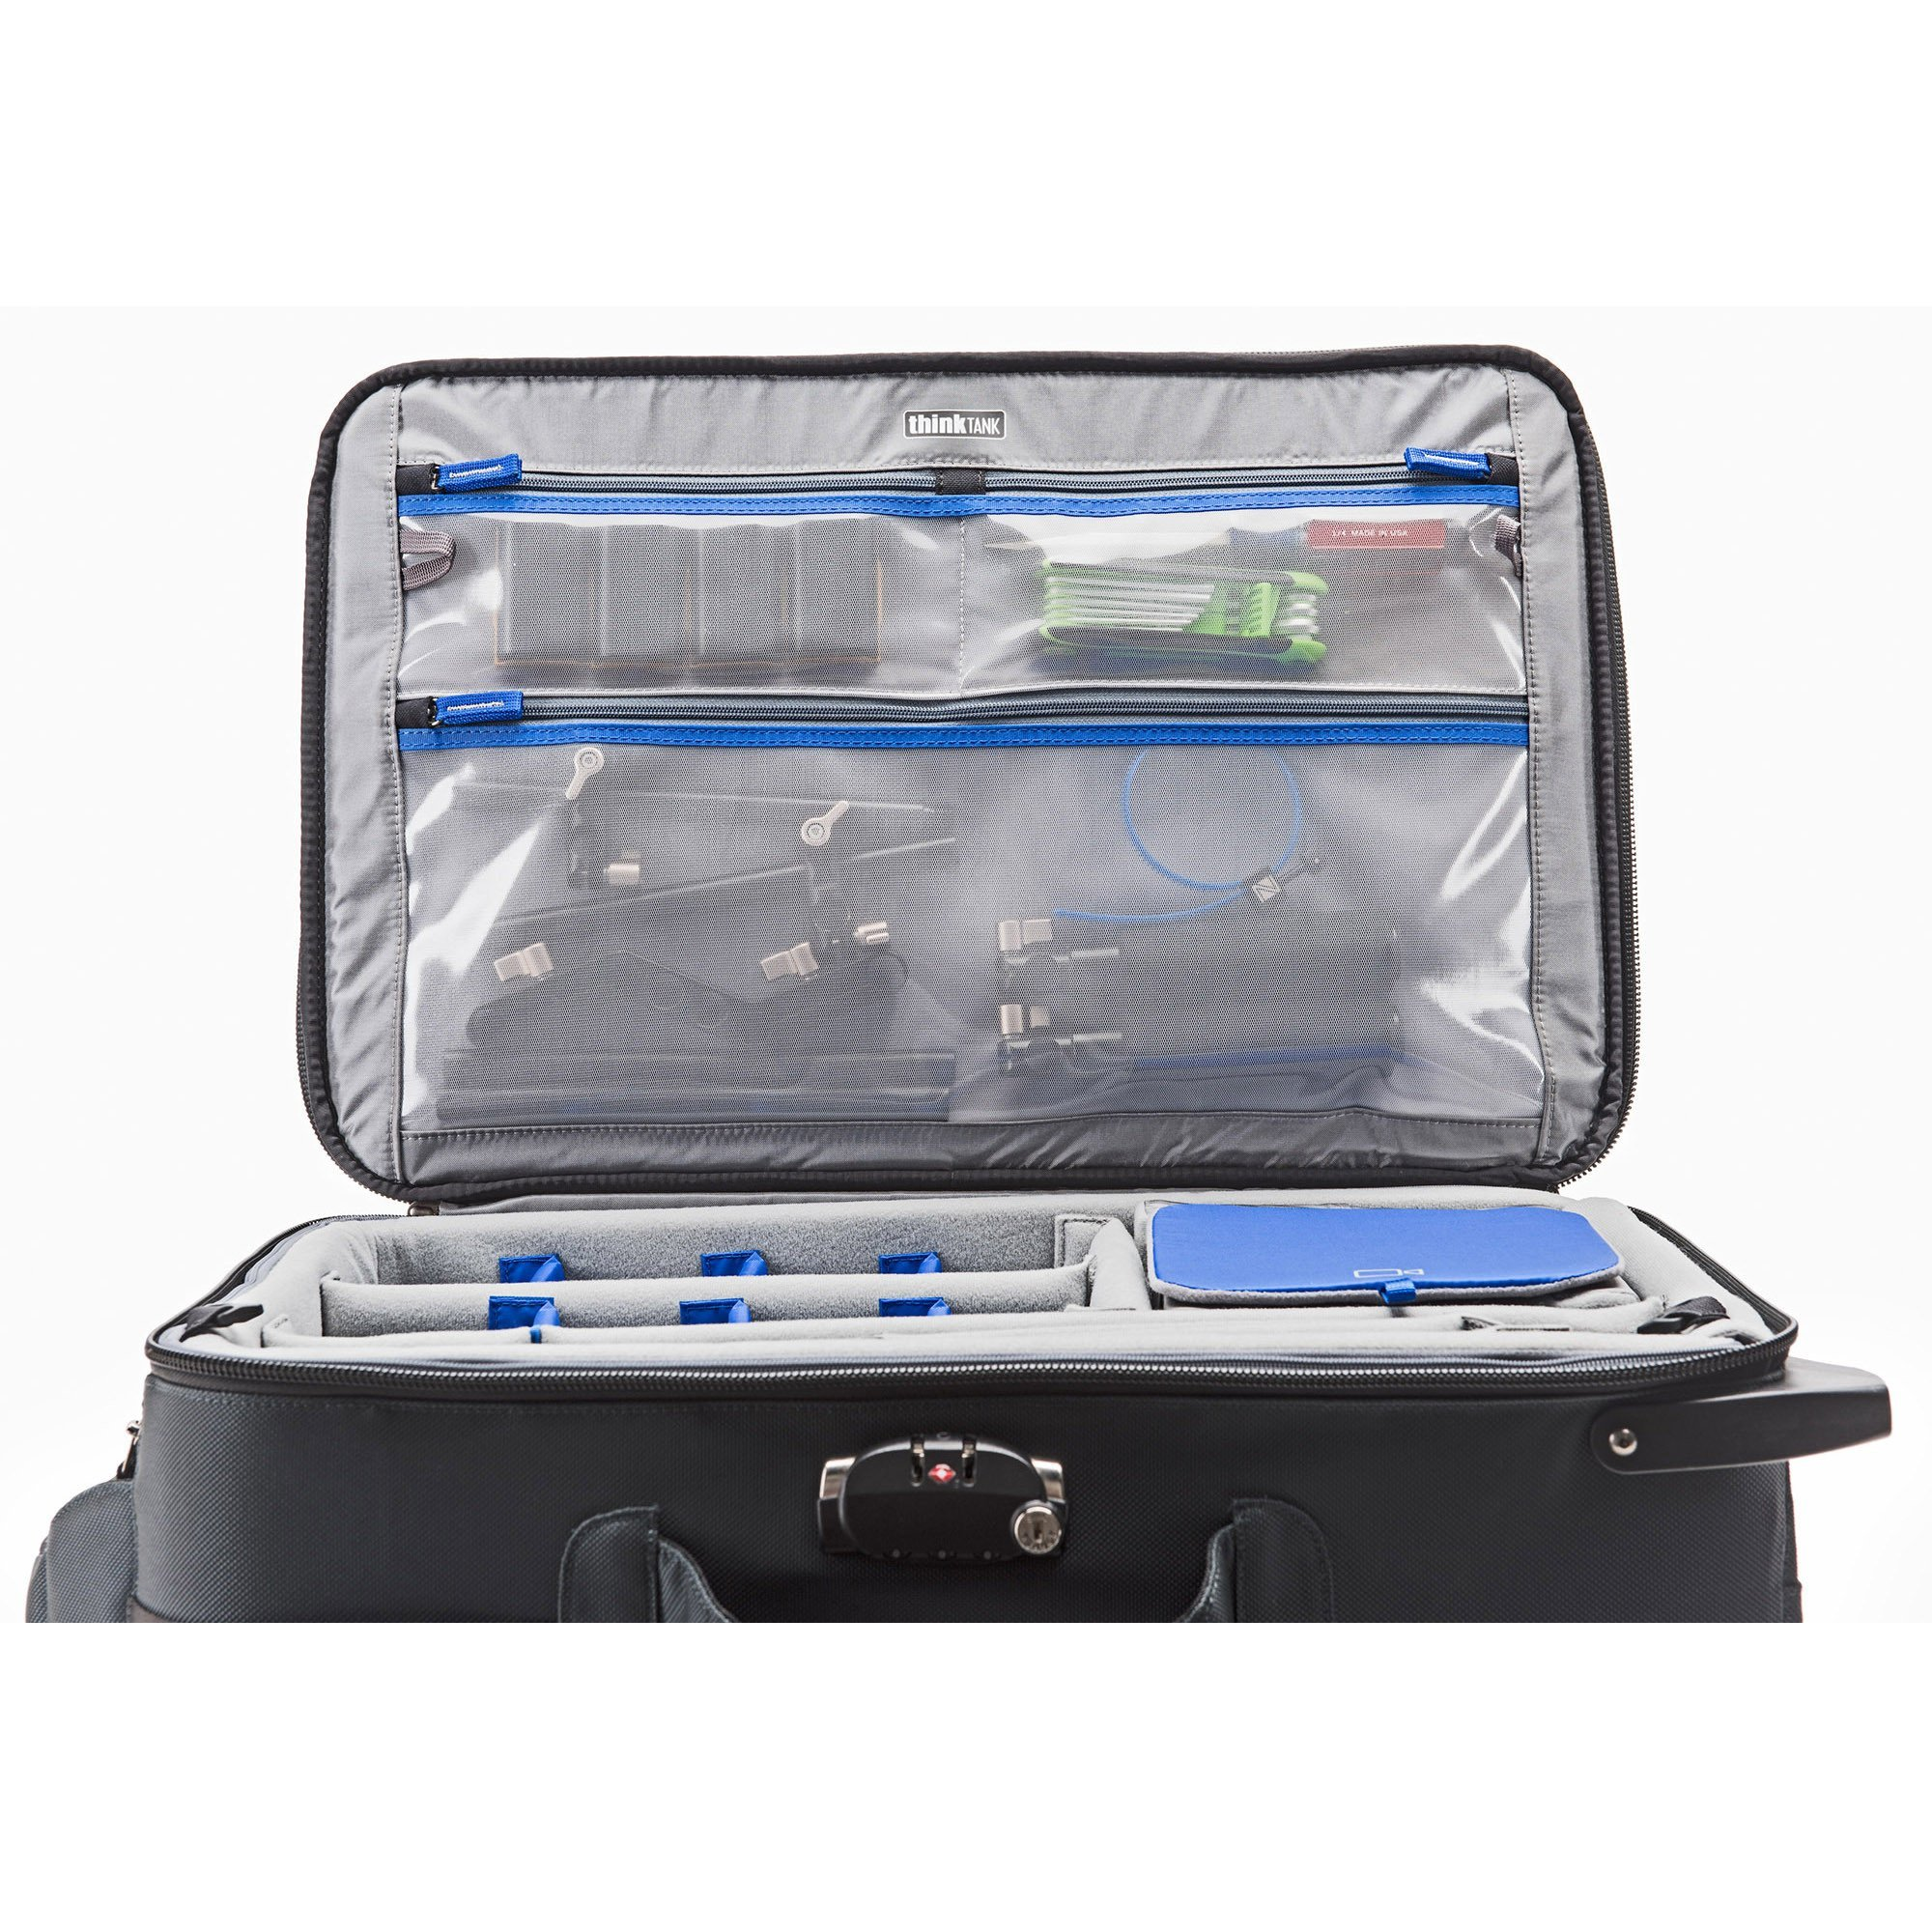 Think Tank Photo Video Transport 20 Carry-On Case (Pacific Slate) by Think Tank (Image #8)